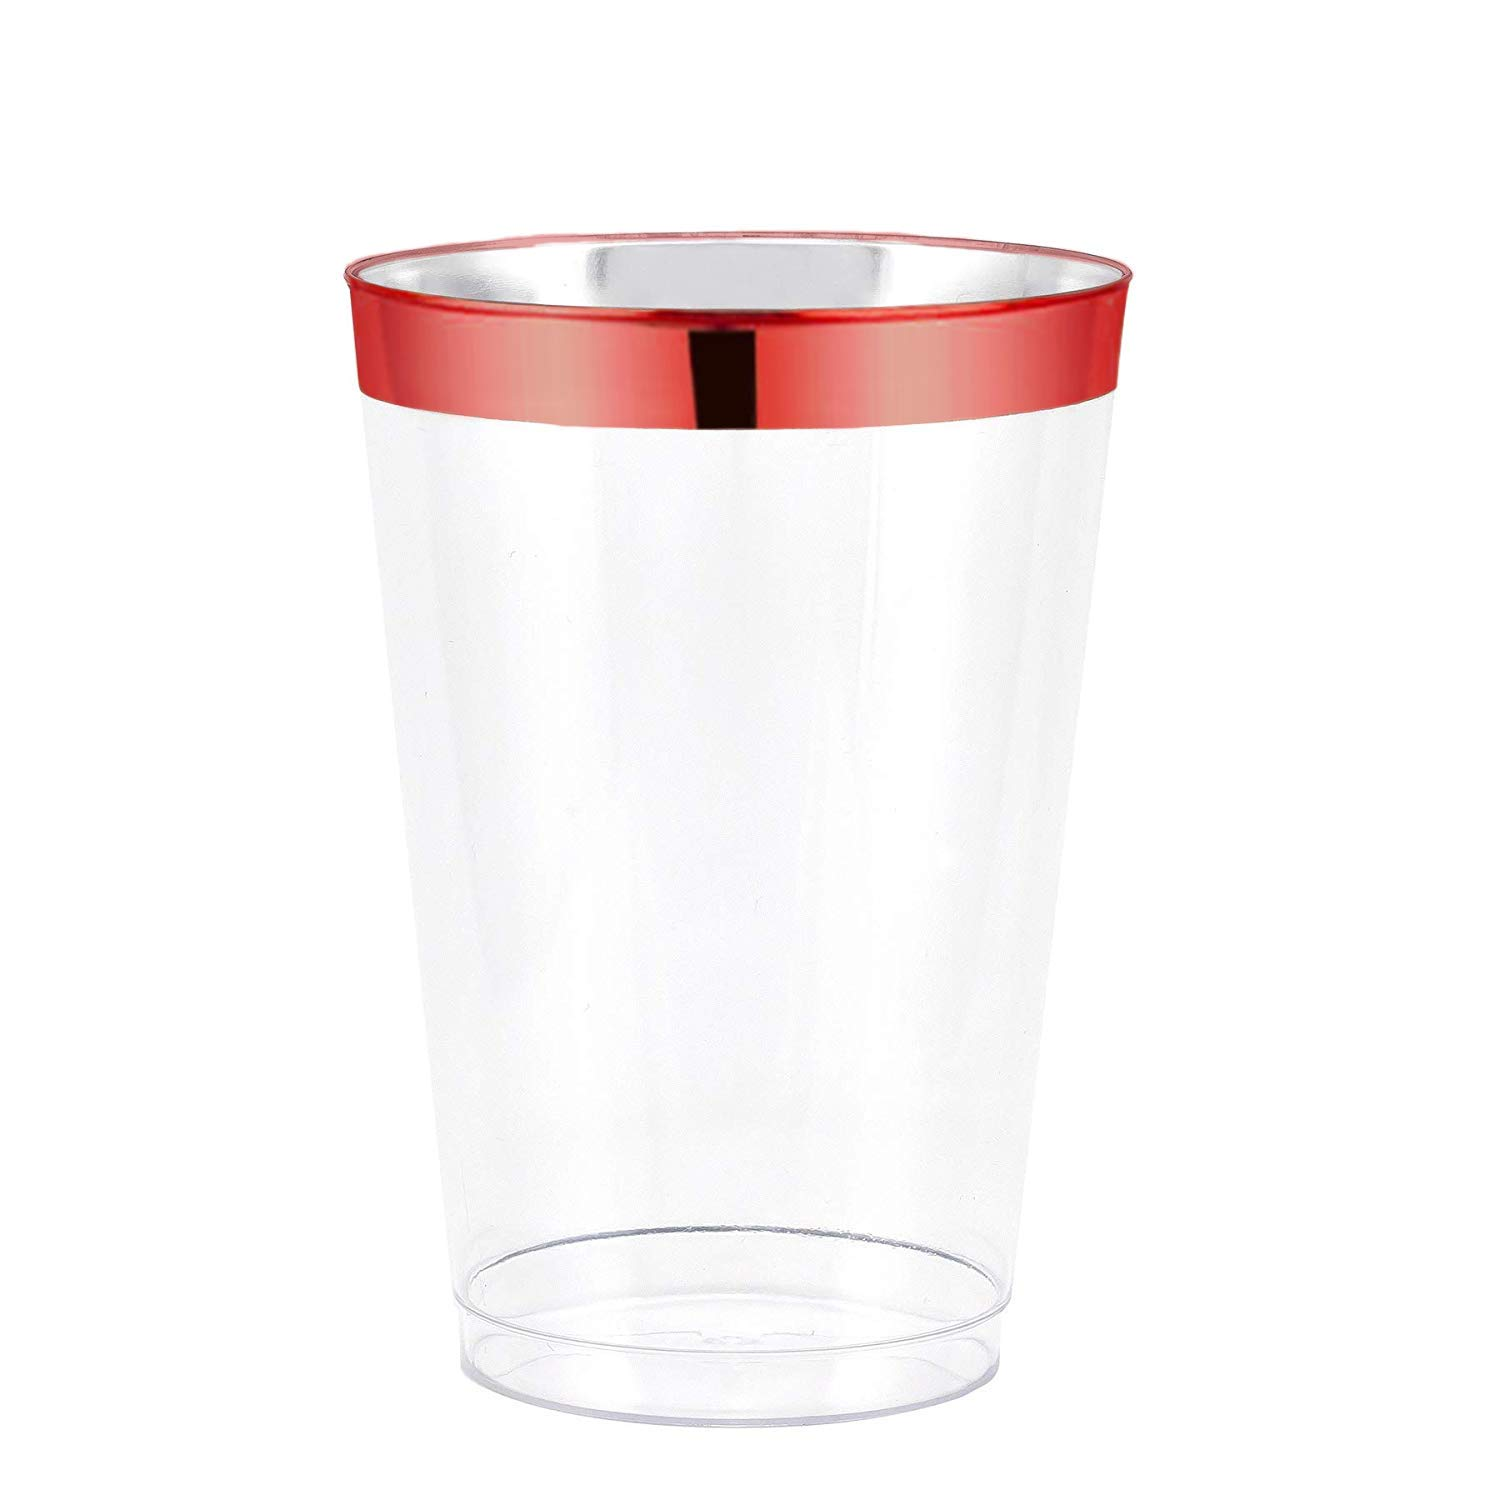 12oz Red Plastic Cups 100 pack- Elegant Fine Dining Heavy Duty Clear Plastic Disposable Cups/Tumblers with Red Rim- Weddings, Parties, Showers, Holidays & Special Occasions- Dulce Dining